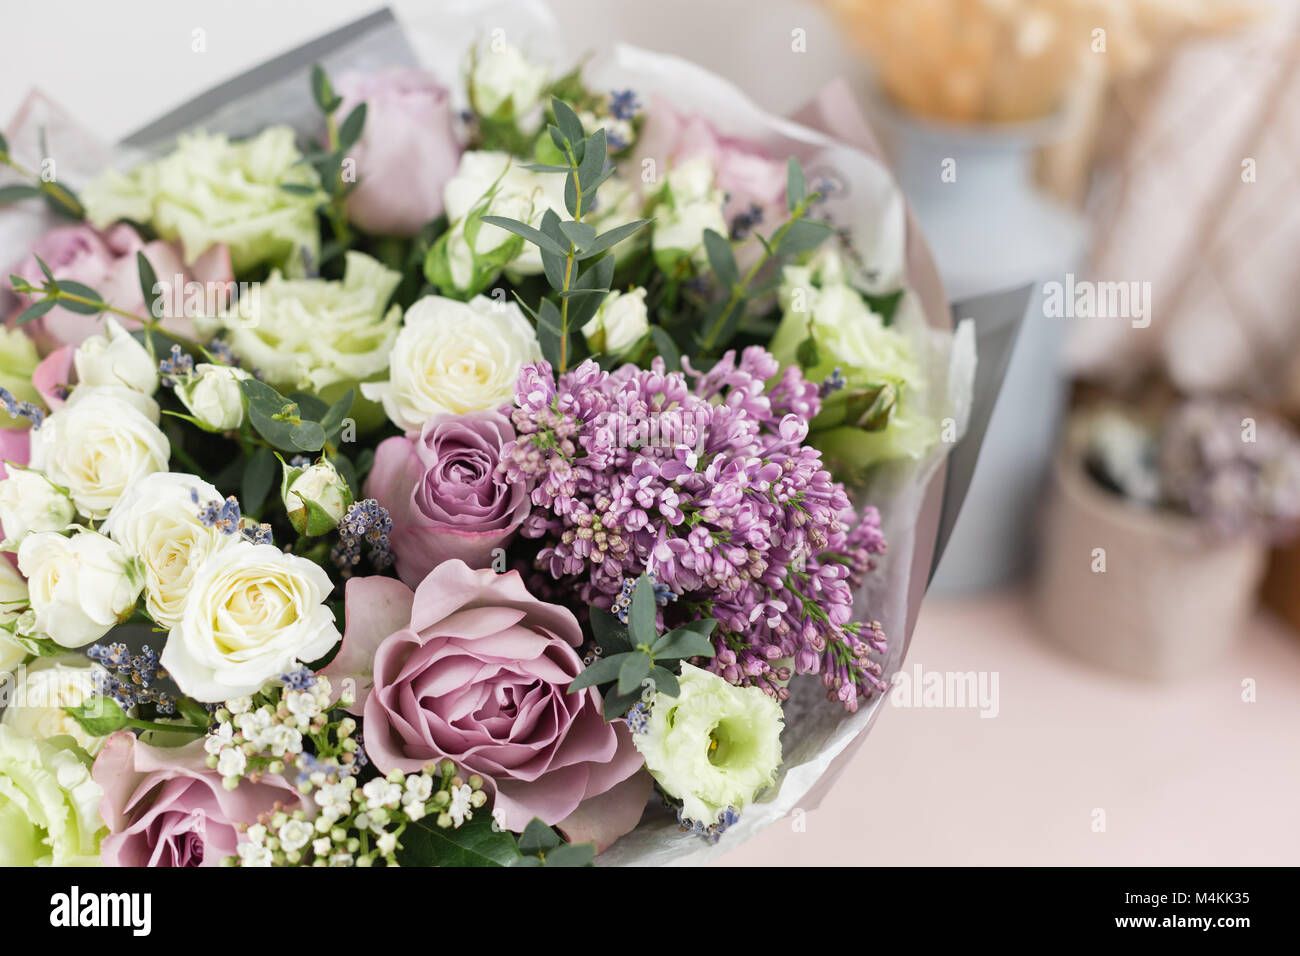 Flower shop concept close up beautiful luxury bouquet of mixed flower shop concept close up beautiful luxury bouquet of mixed flowers on wooden table wallpaper izmirmasajfo Choice Image